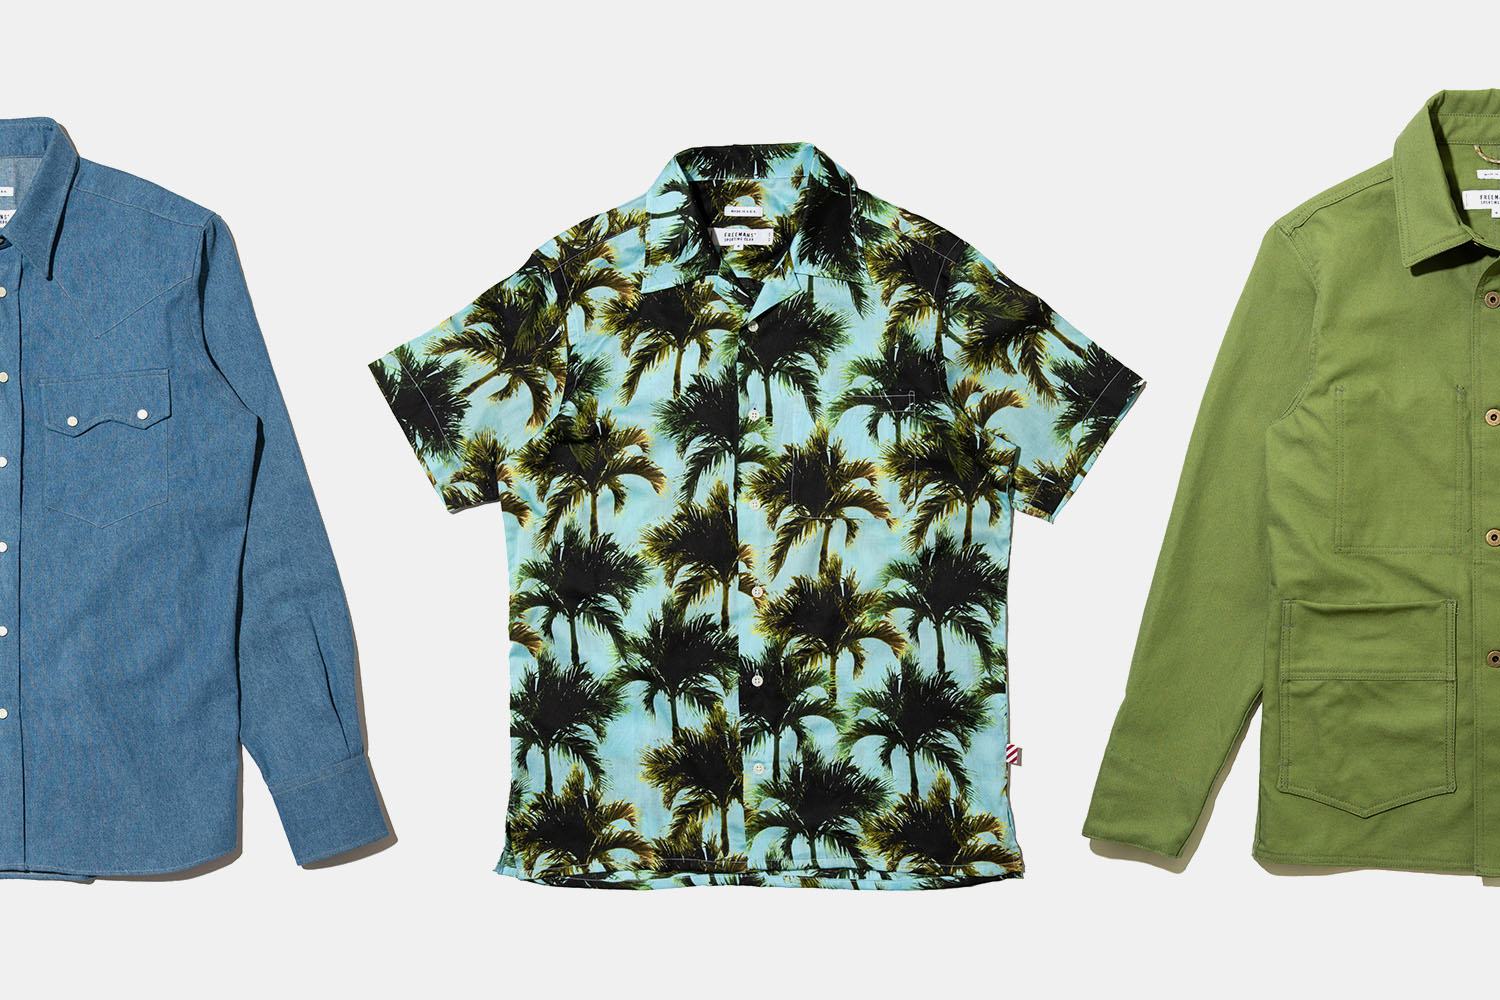 Freemans Sporting Club palm tree shirt, chore jacket and denim shirt